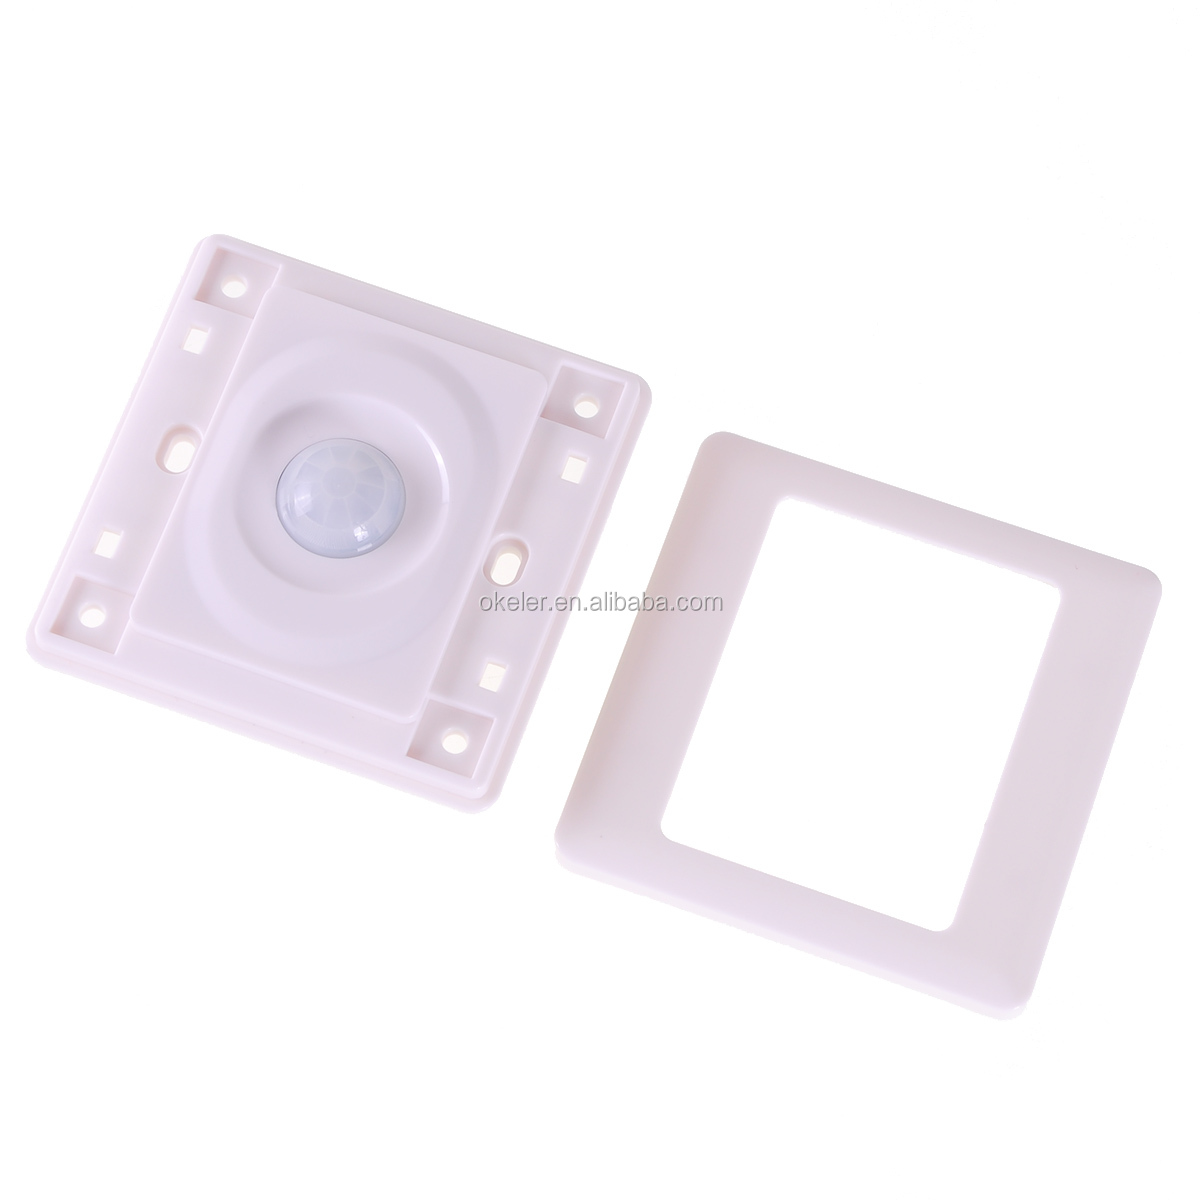 Infrared IR PIR Module Body Motion Sensor Auto On off Lamps Lights Sensor Switch